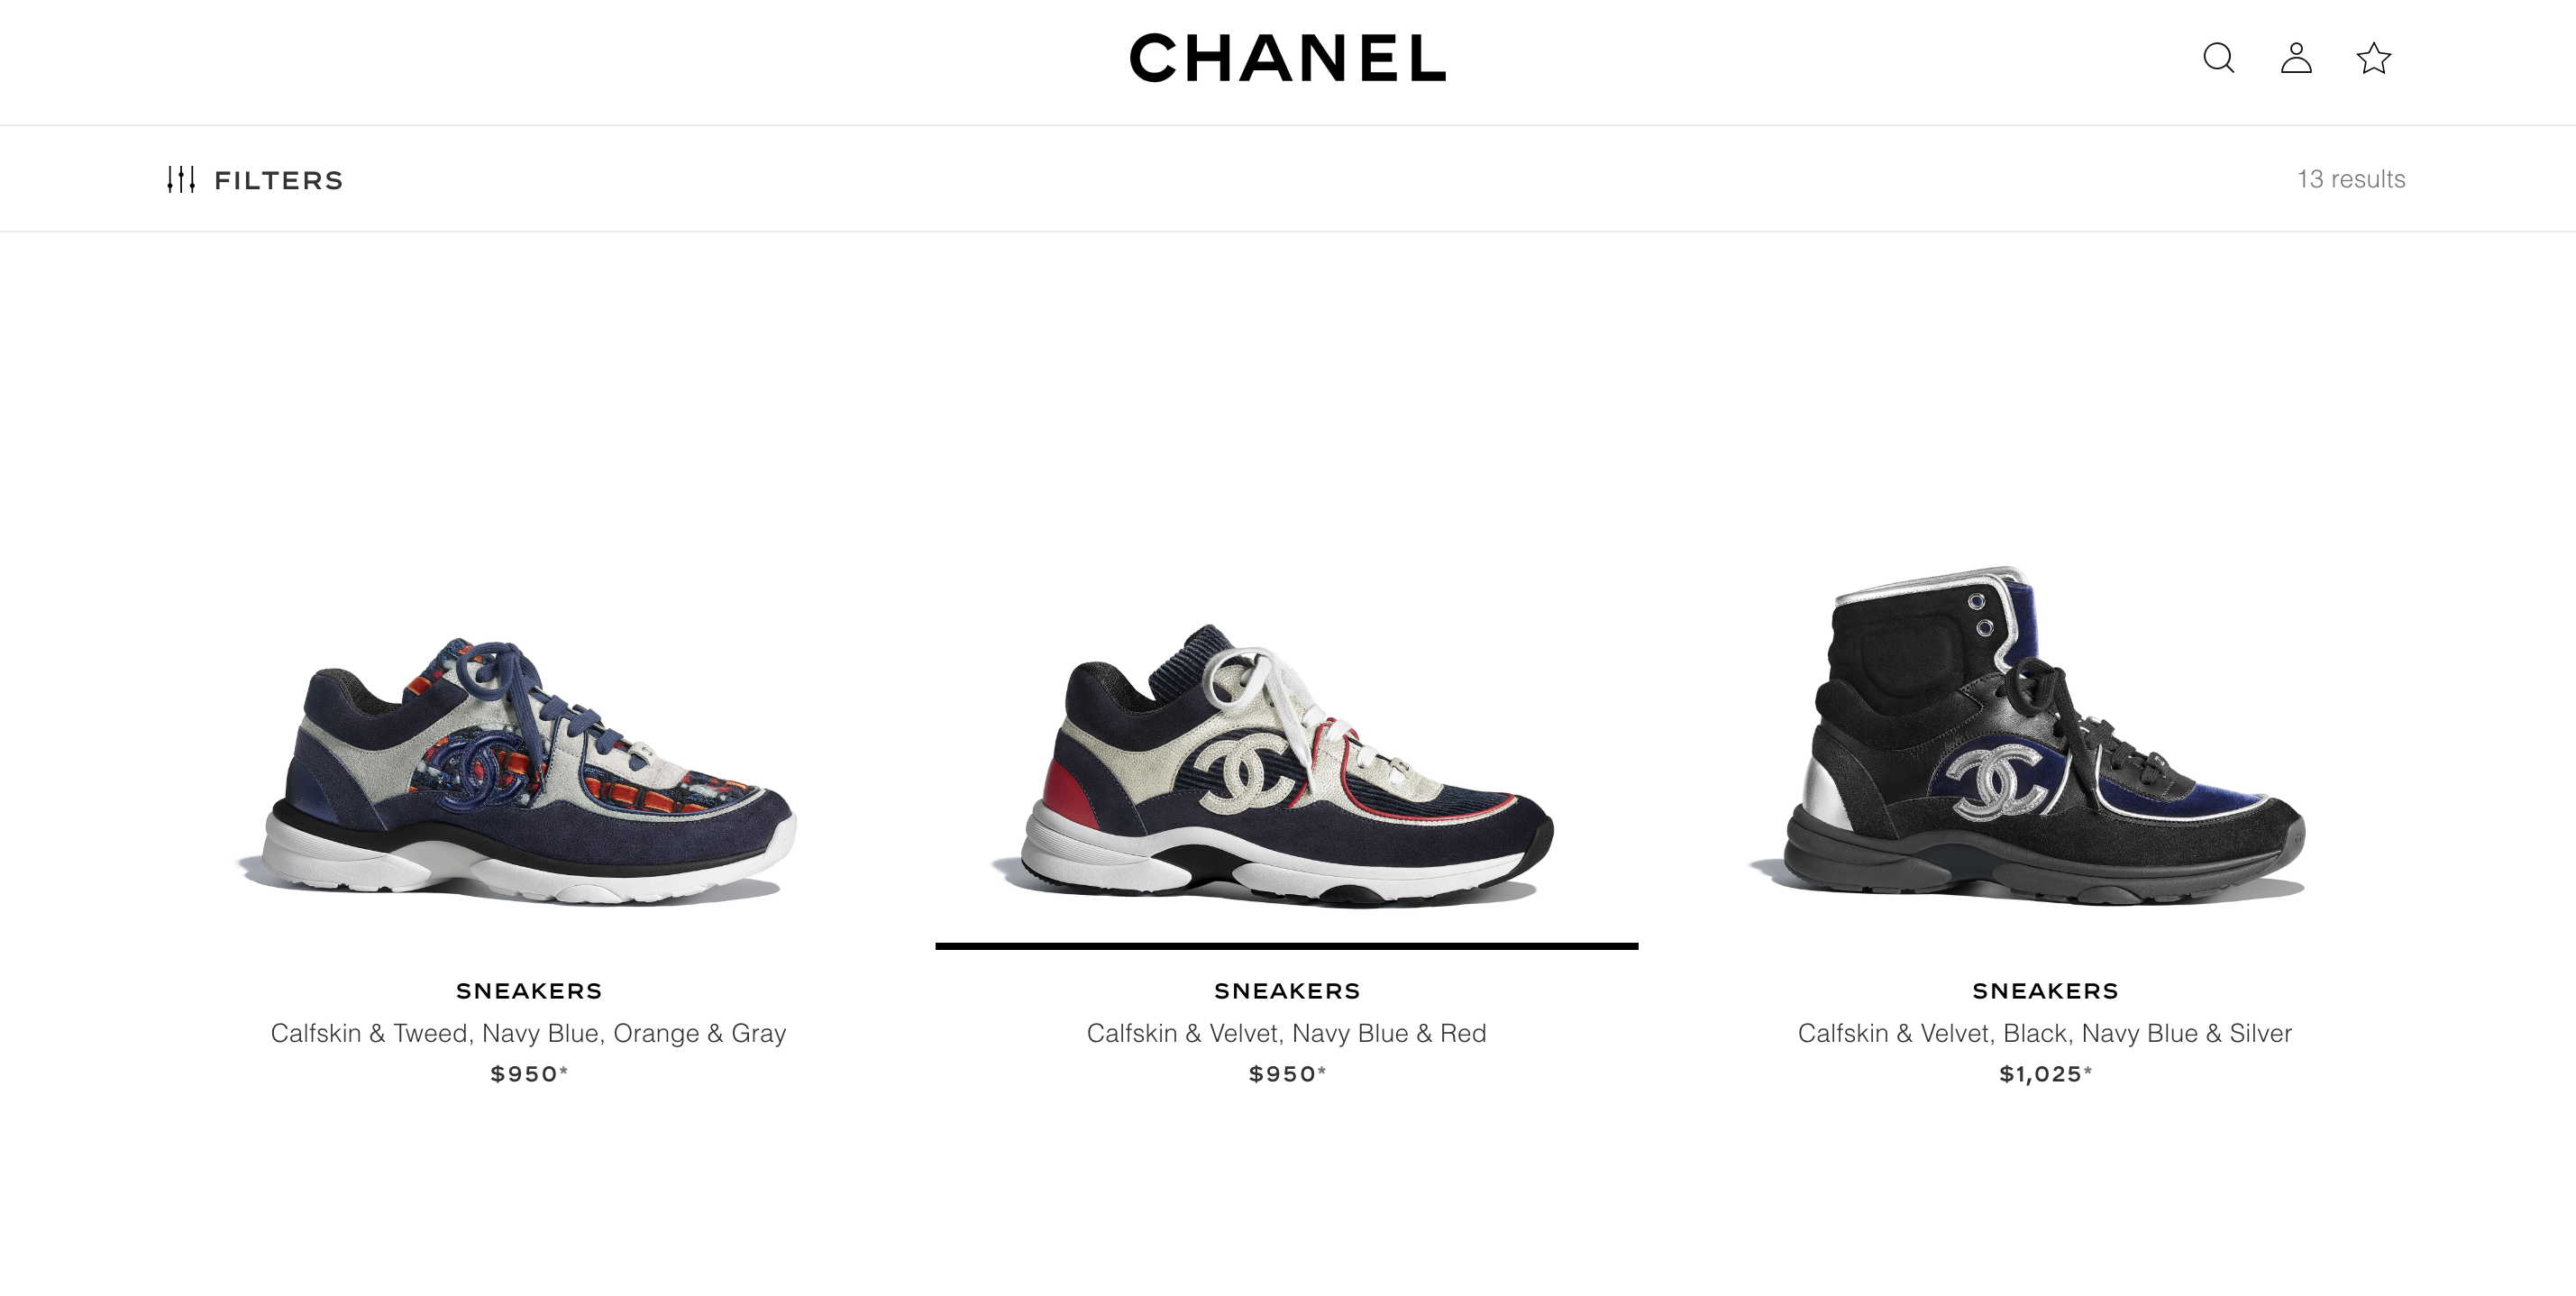 Chanel website featuring luxury sports shoes